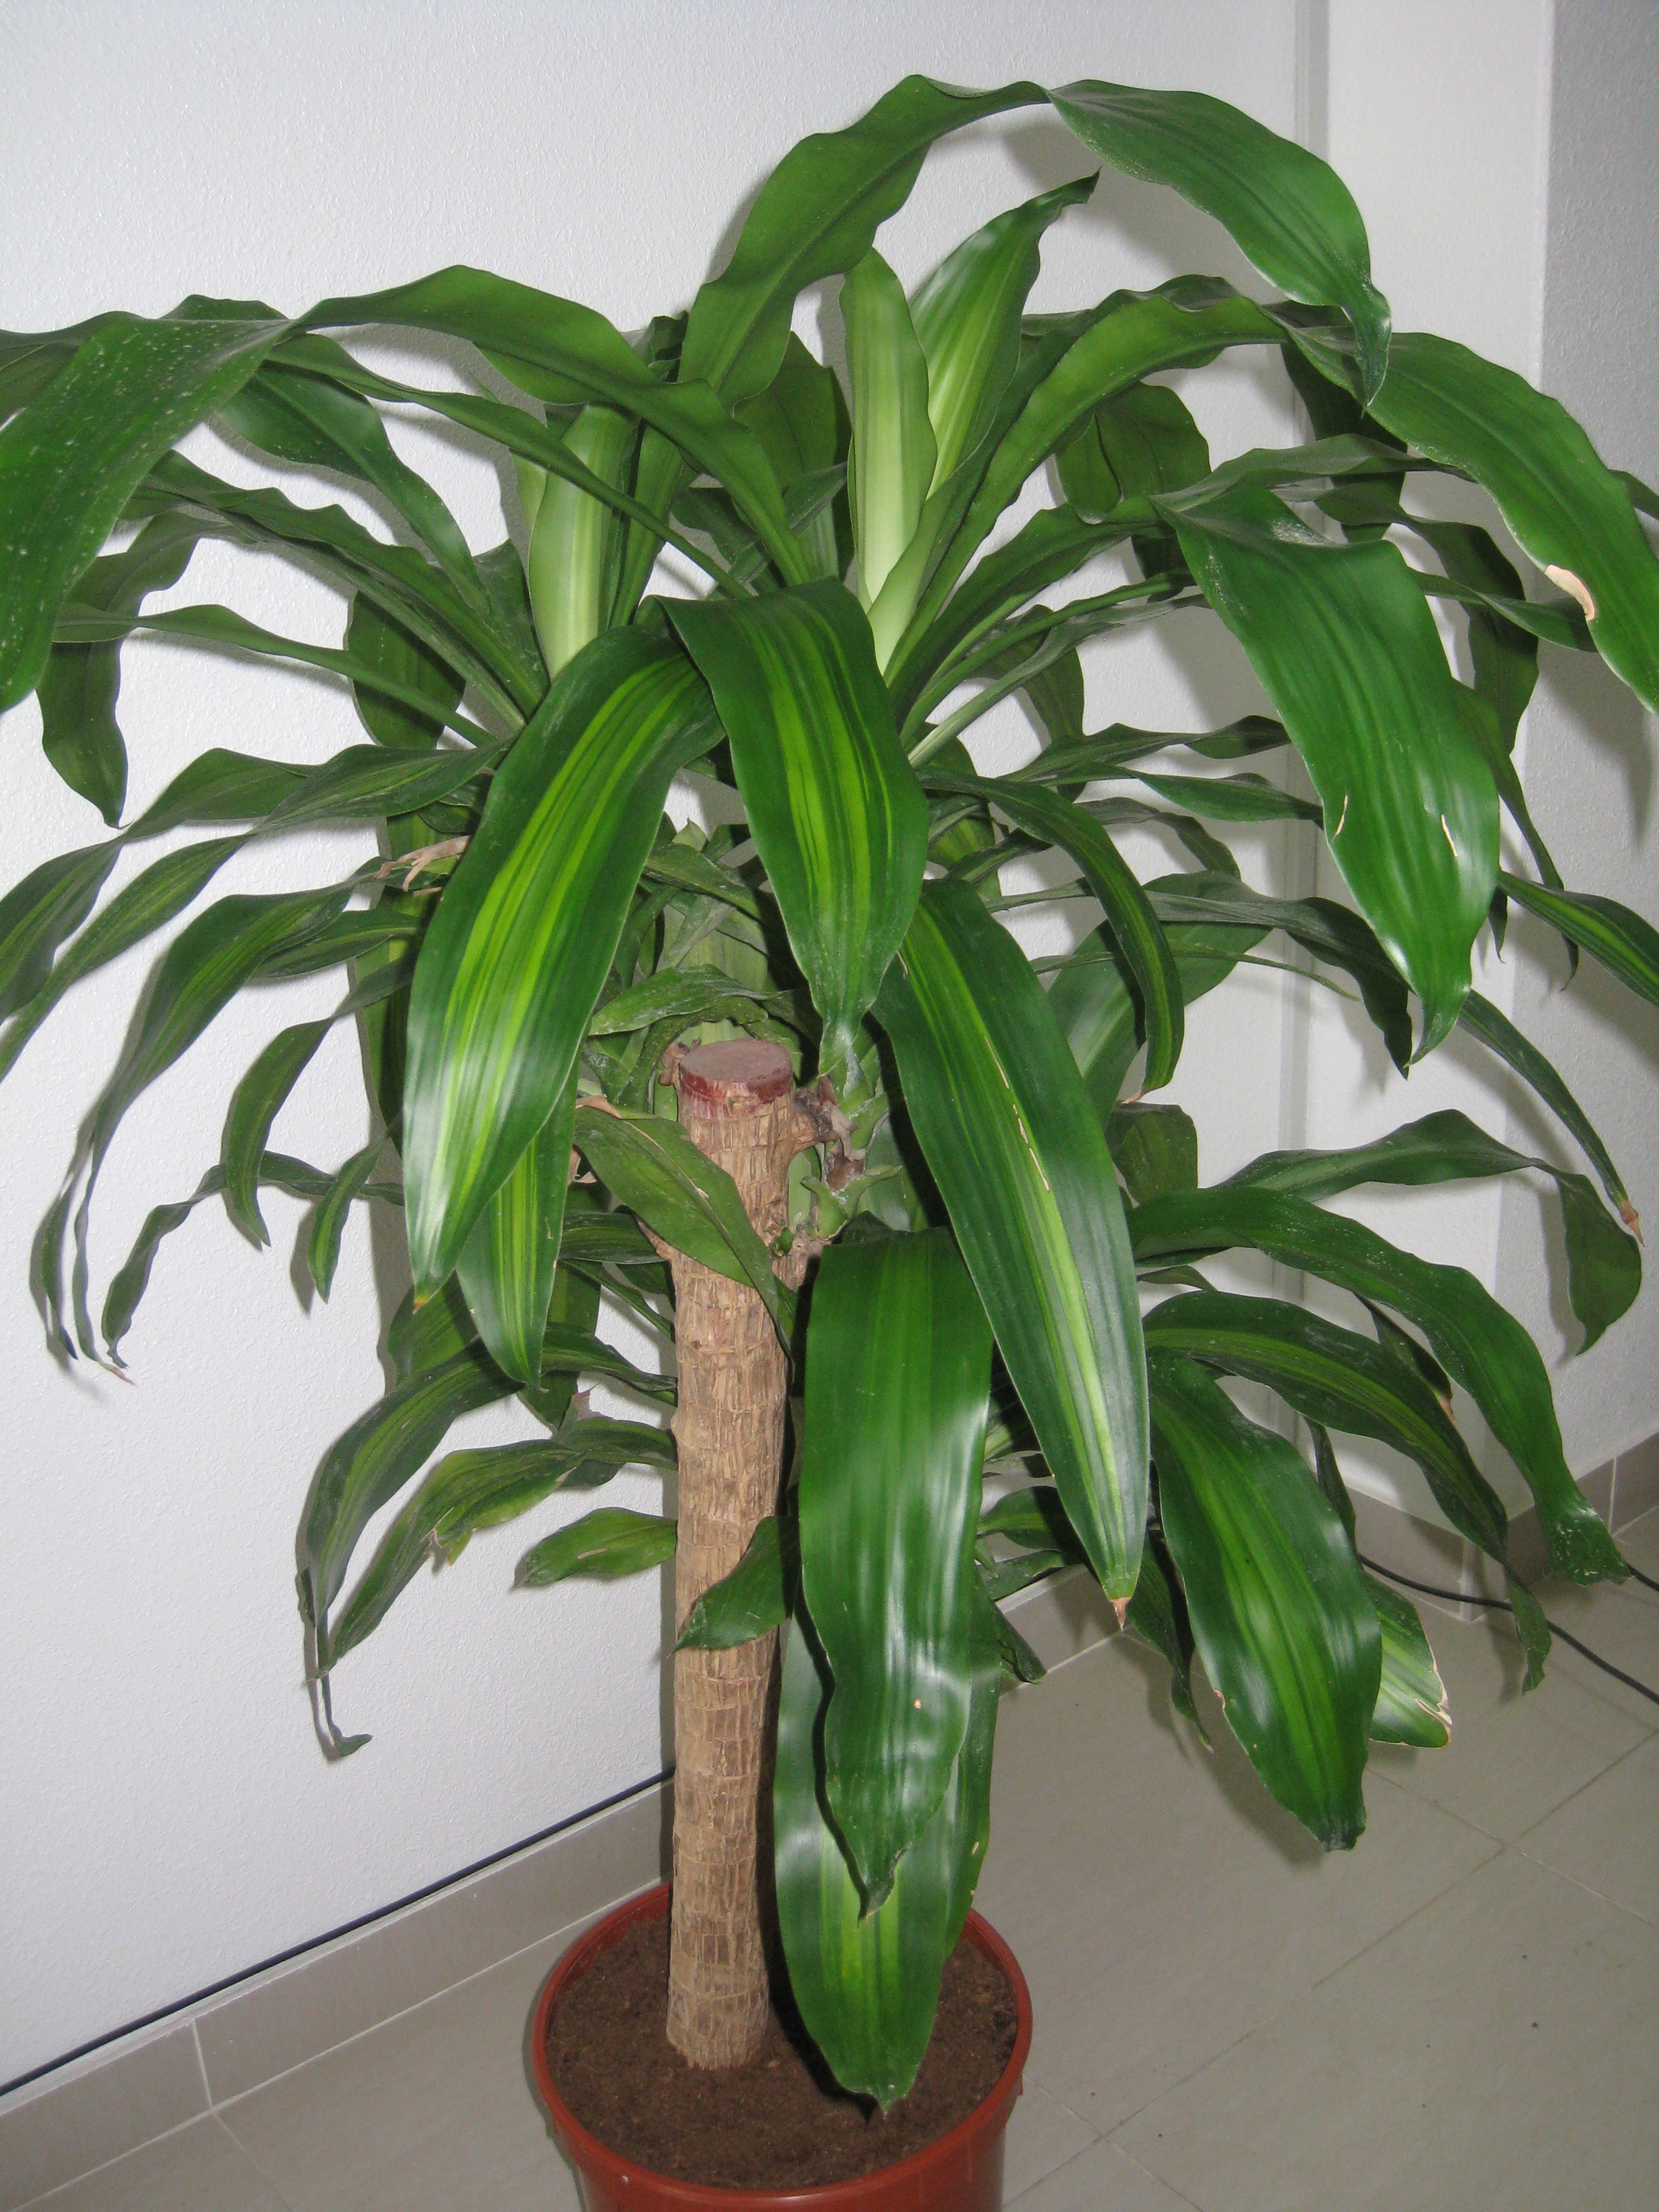 Houseplants how to prune an overgrown and now flowering dracaena gardening landscaping - Good flowering house plants ...